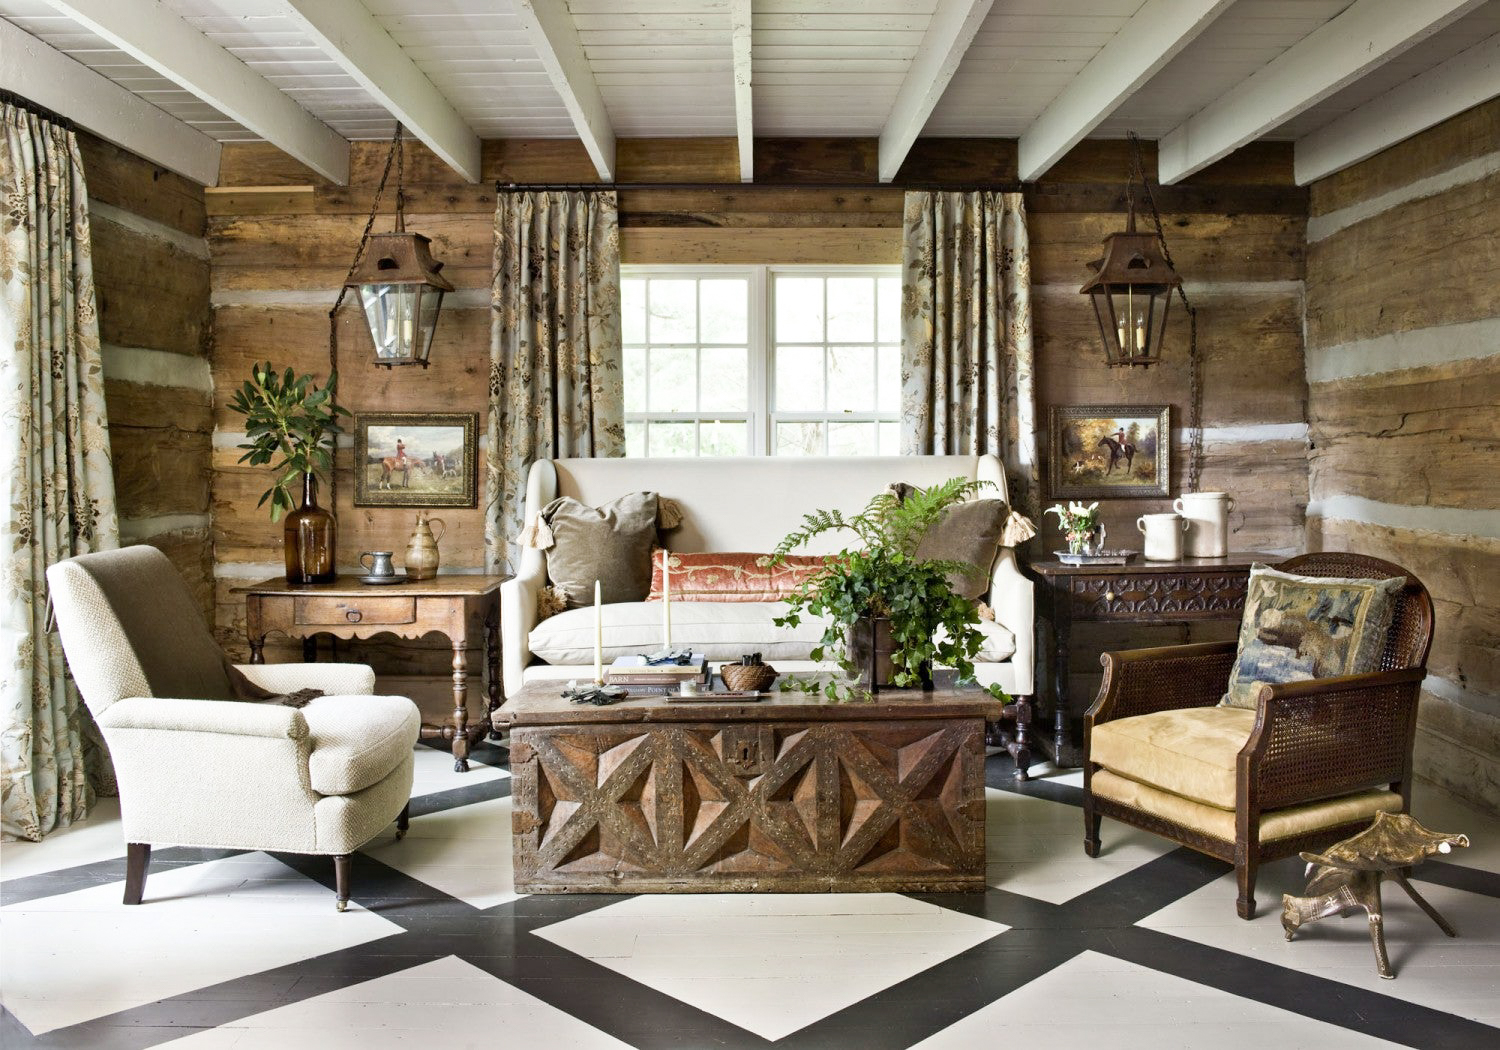 Tammy Connor Cashiers Showhouse on Cindy Hattersley's blog